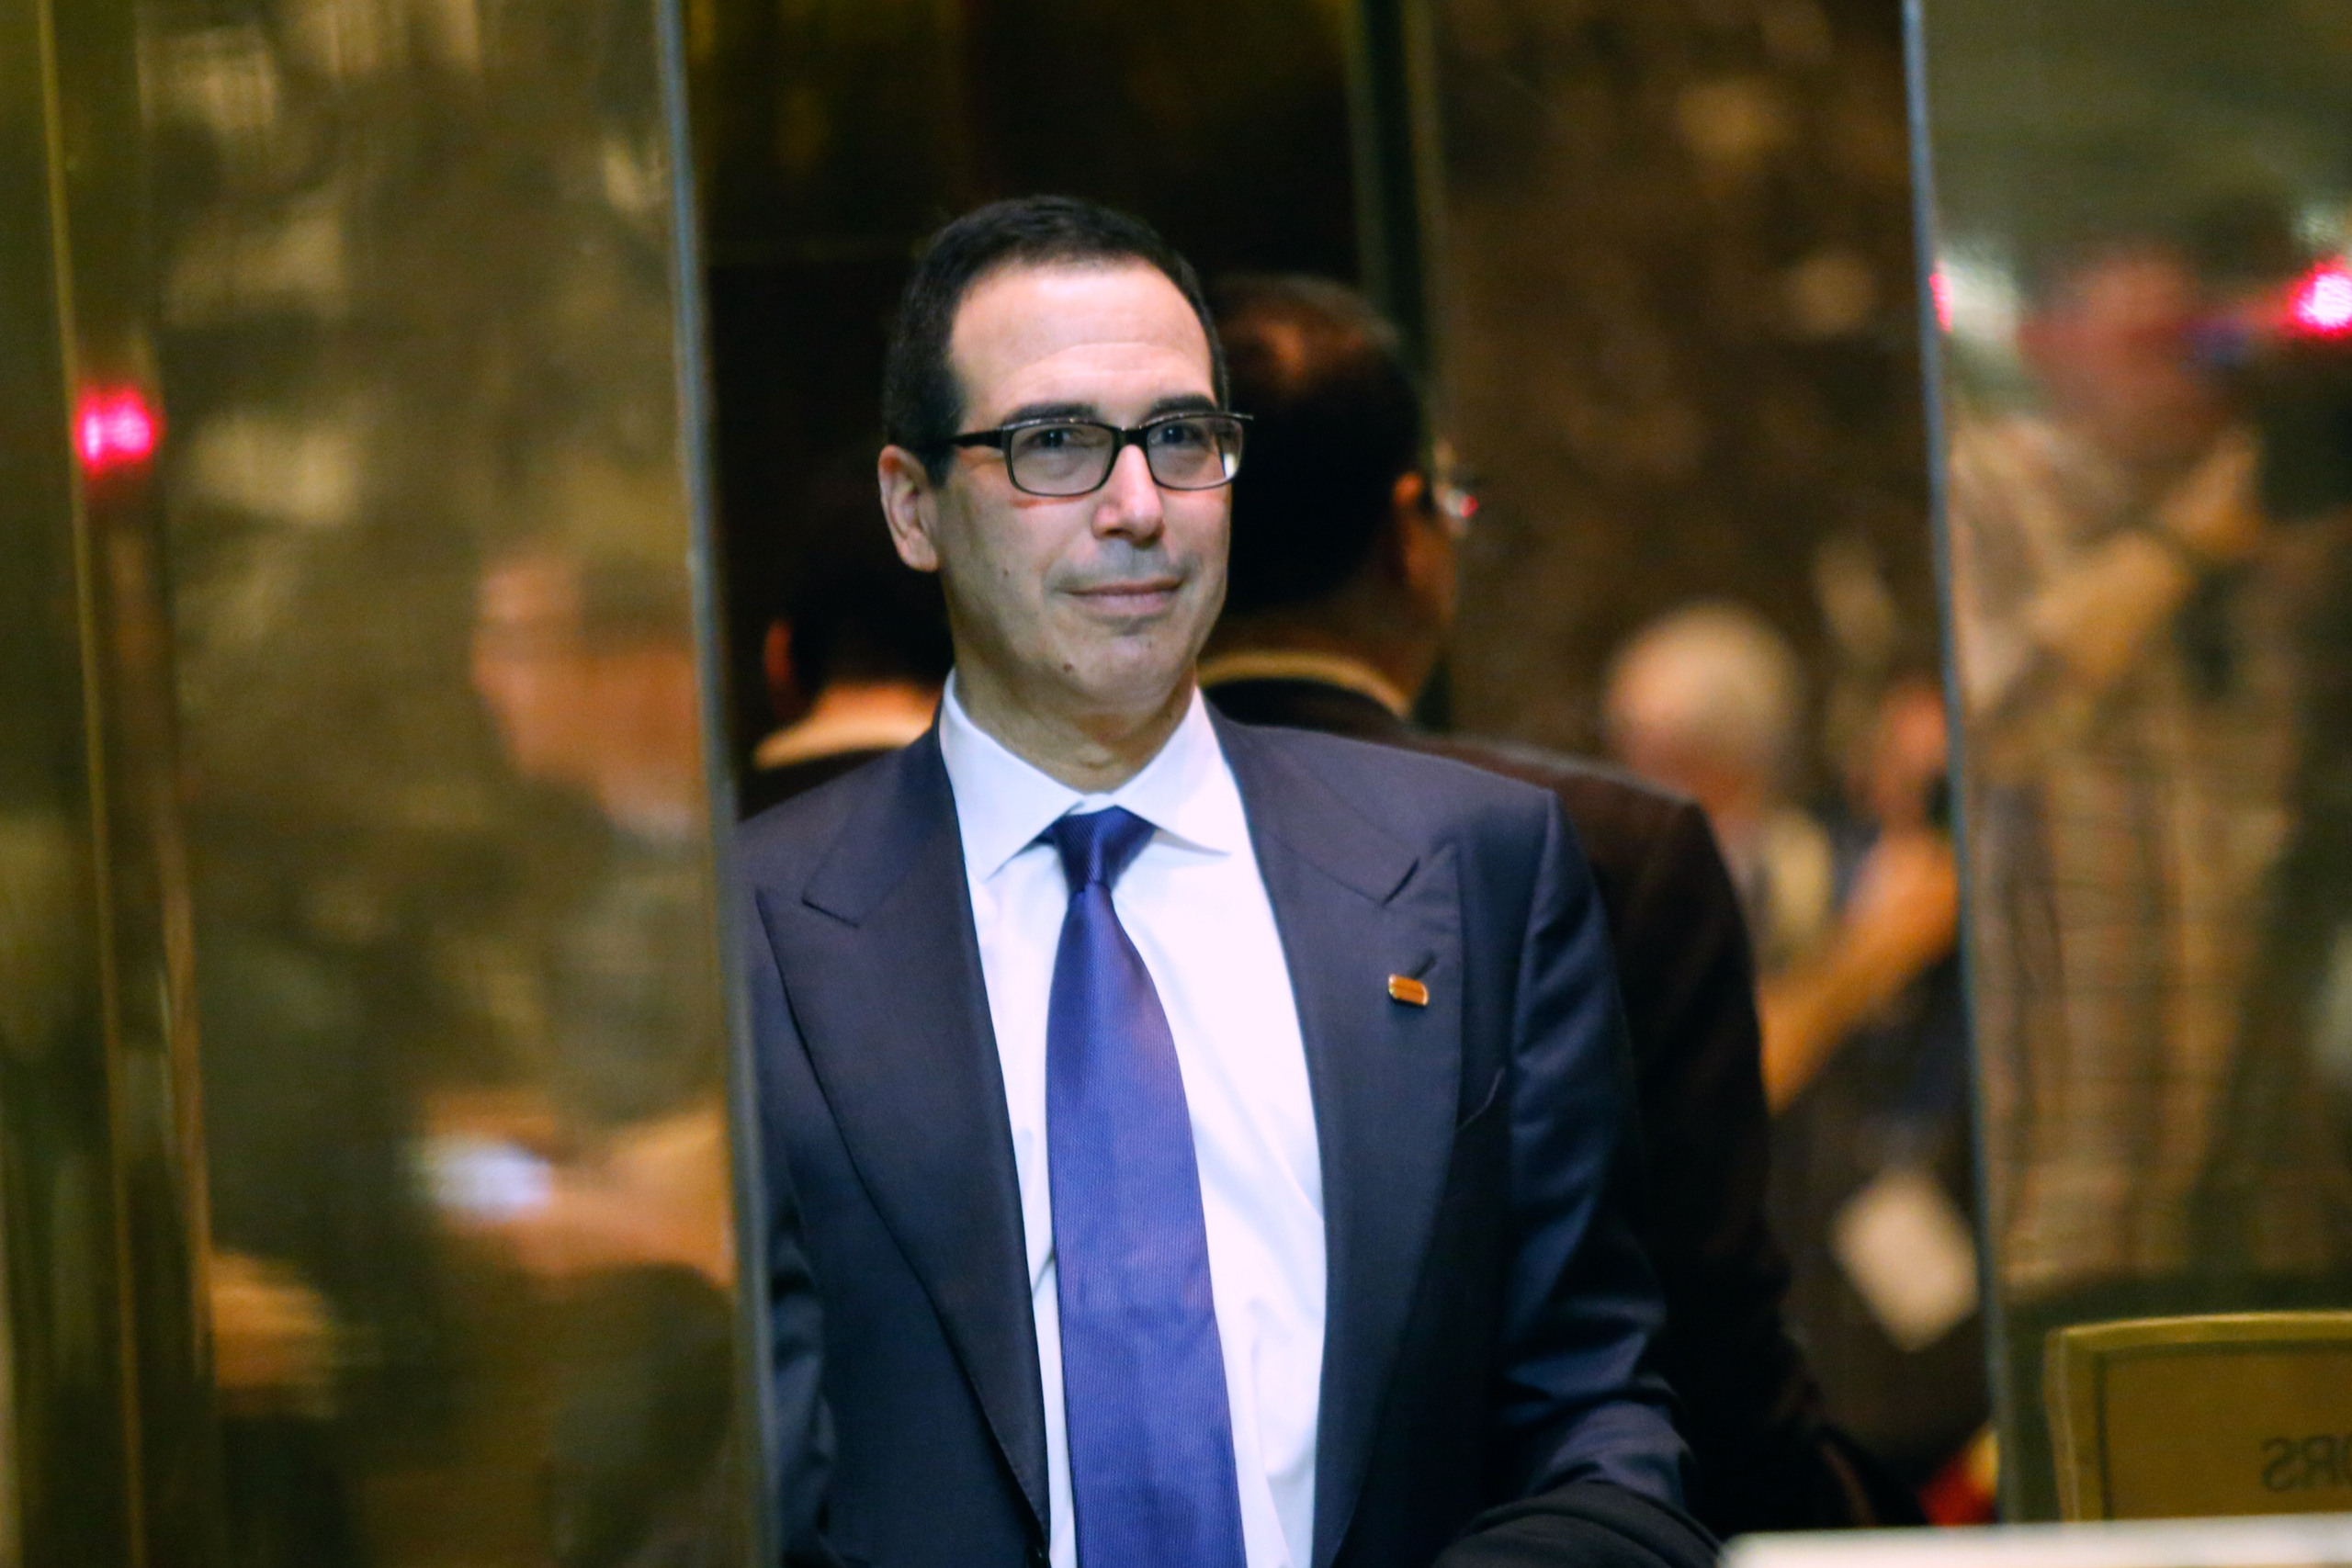 Advisor Steven Mnuchin arrives at the Trump Tower for meetings with US President-elect Donald Trump, in New York on Nov. 17, 2016.